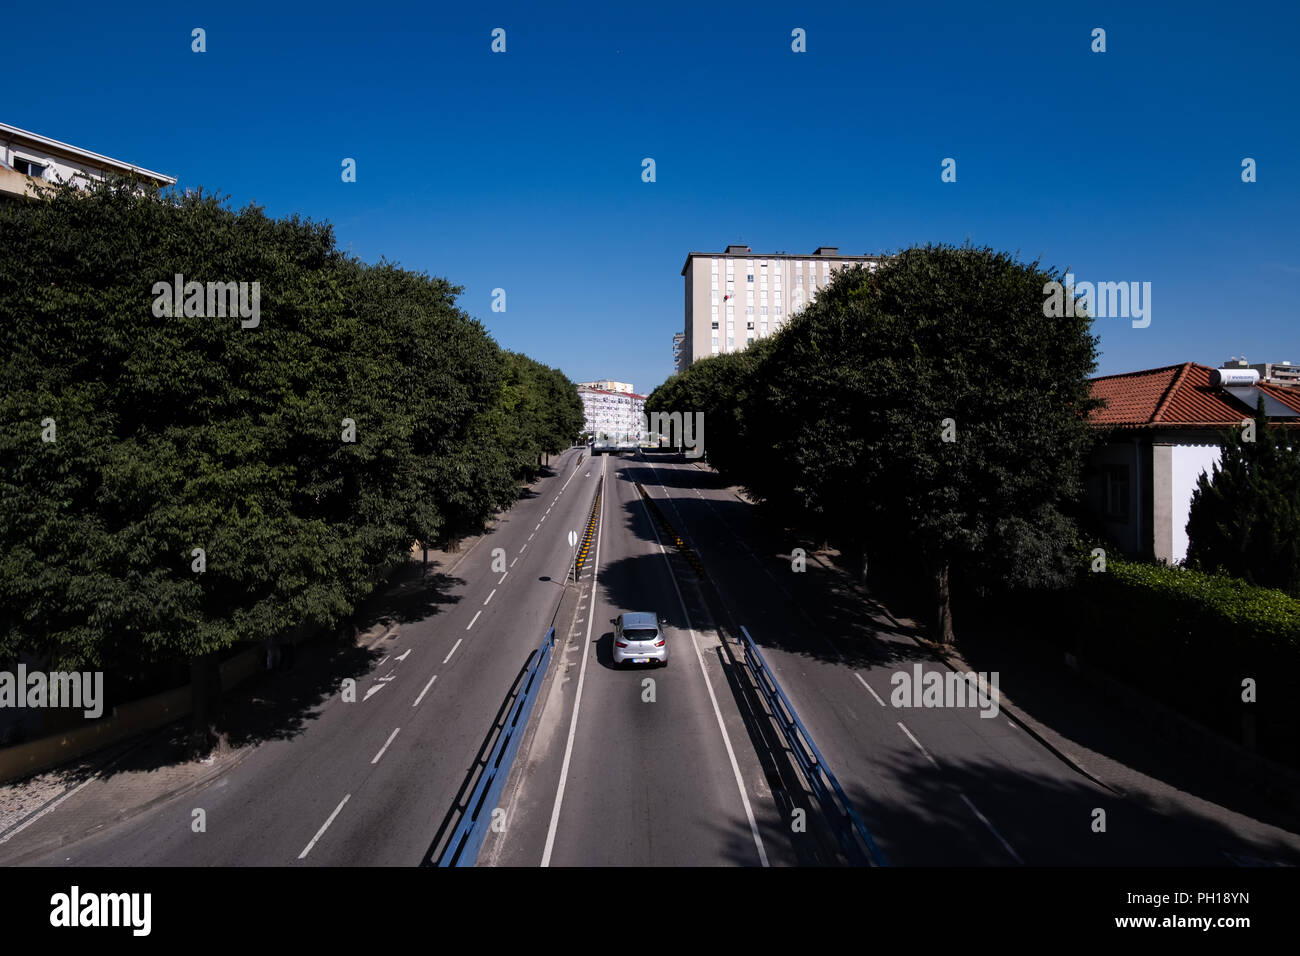 paved highways and avenues of a regular city composing an urban site - Stock Image